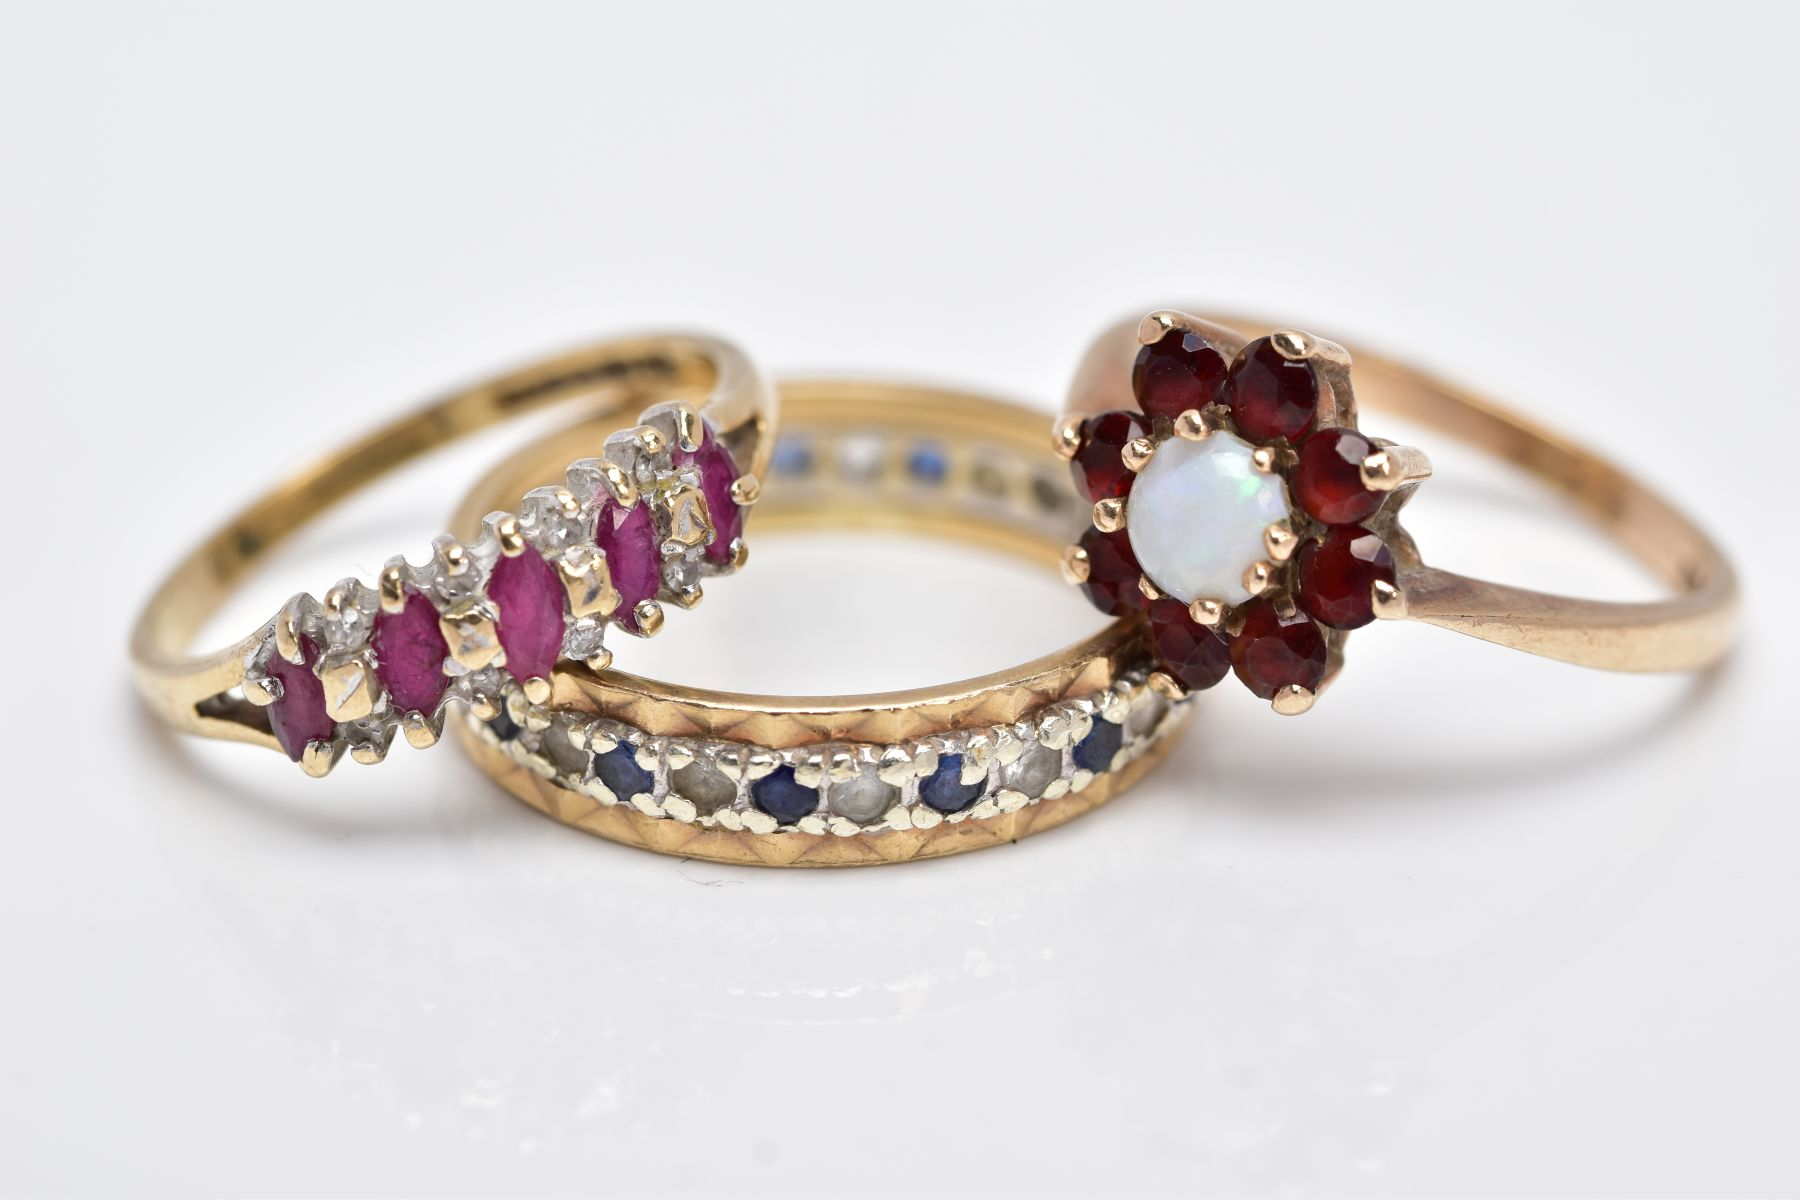 THREE 9CT GOLD GEM SET RINGS, to include a full eternity ring set with colourless spinel and blue